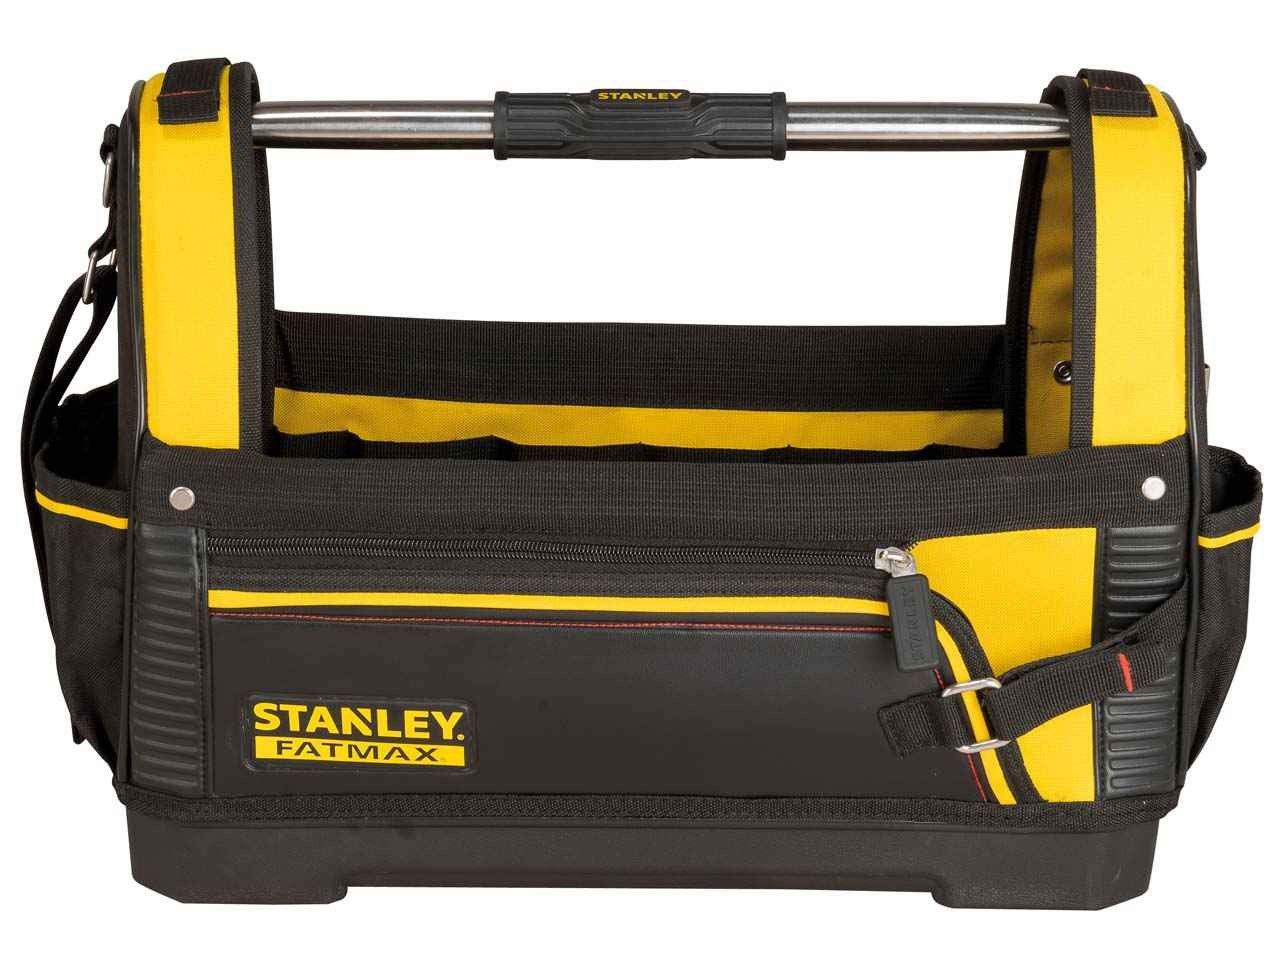 stanley sta193951 fatmax 18in open tote tool bag. Black Bedroom Furniture Sets. Home Design Ideas